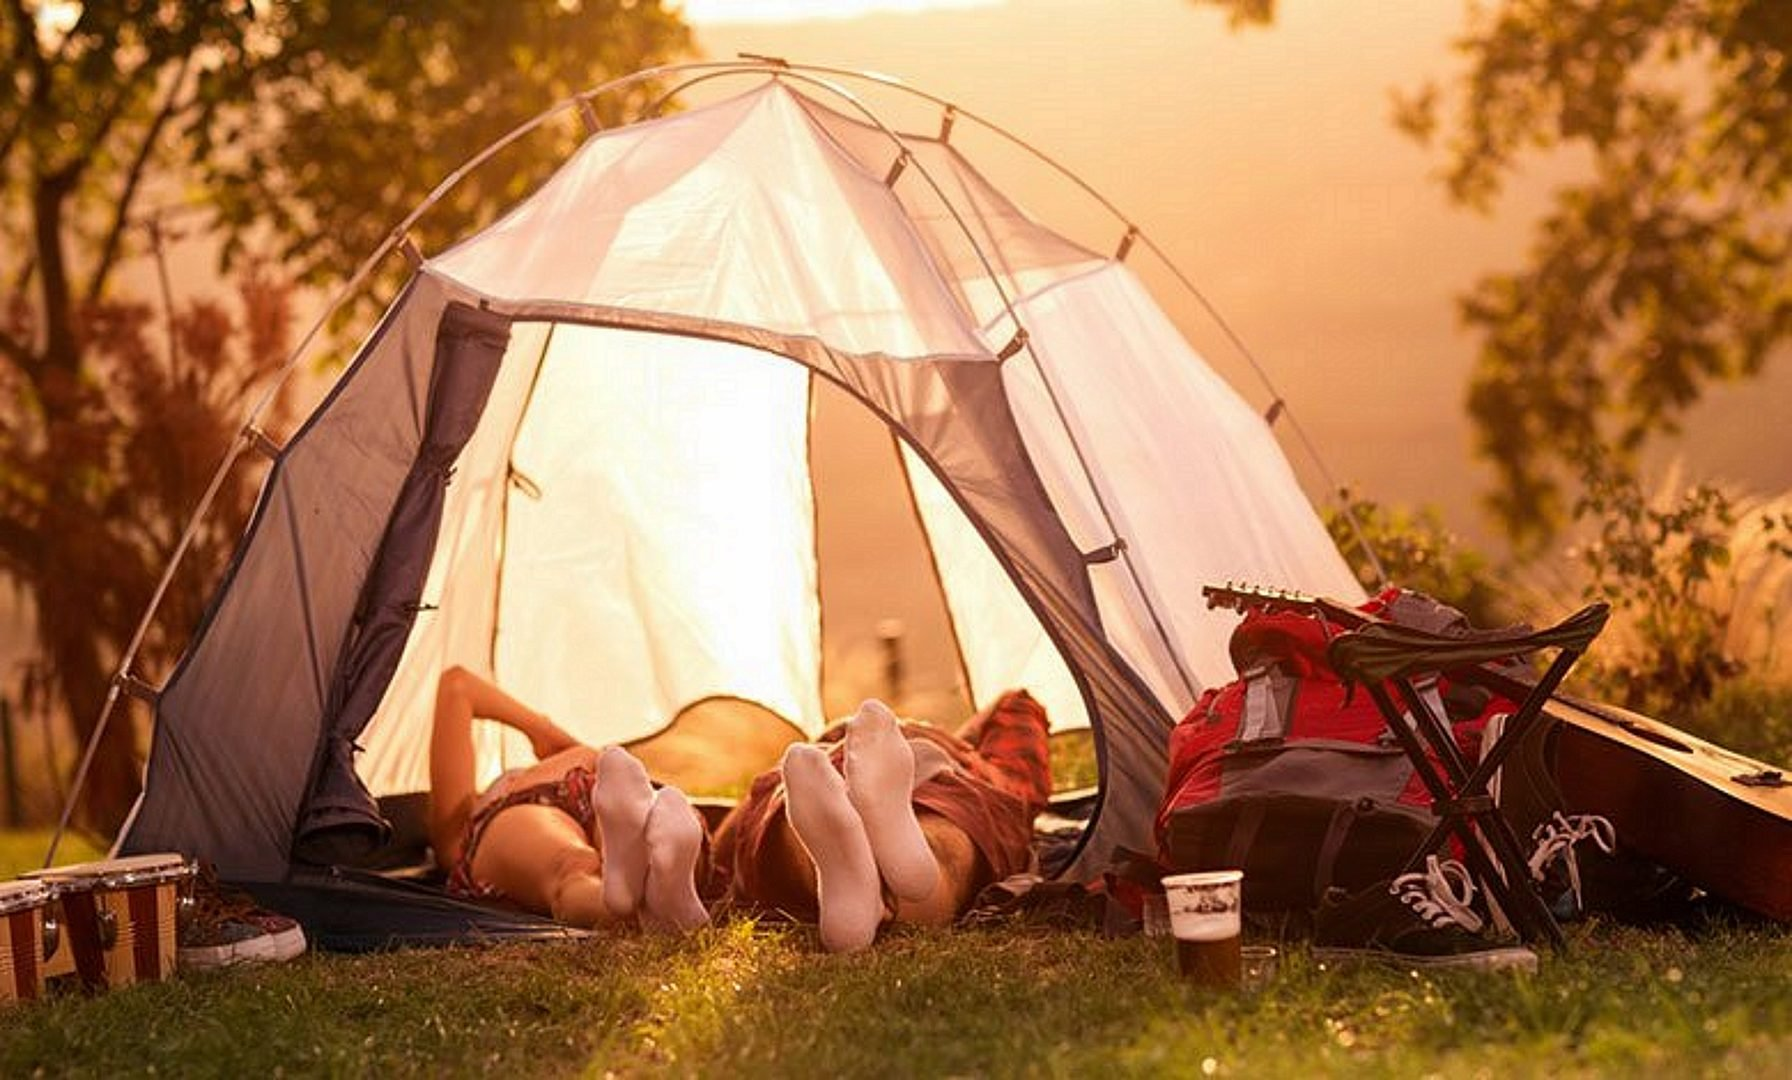 Camping in a white tent